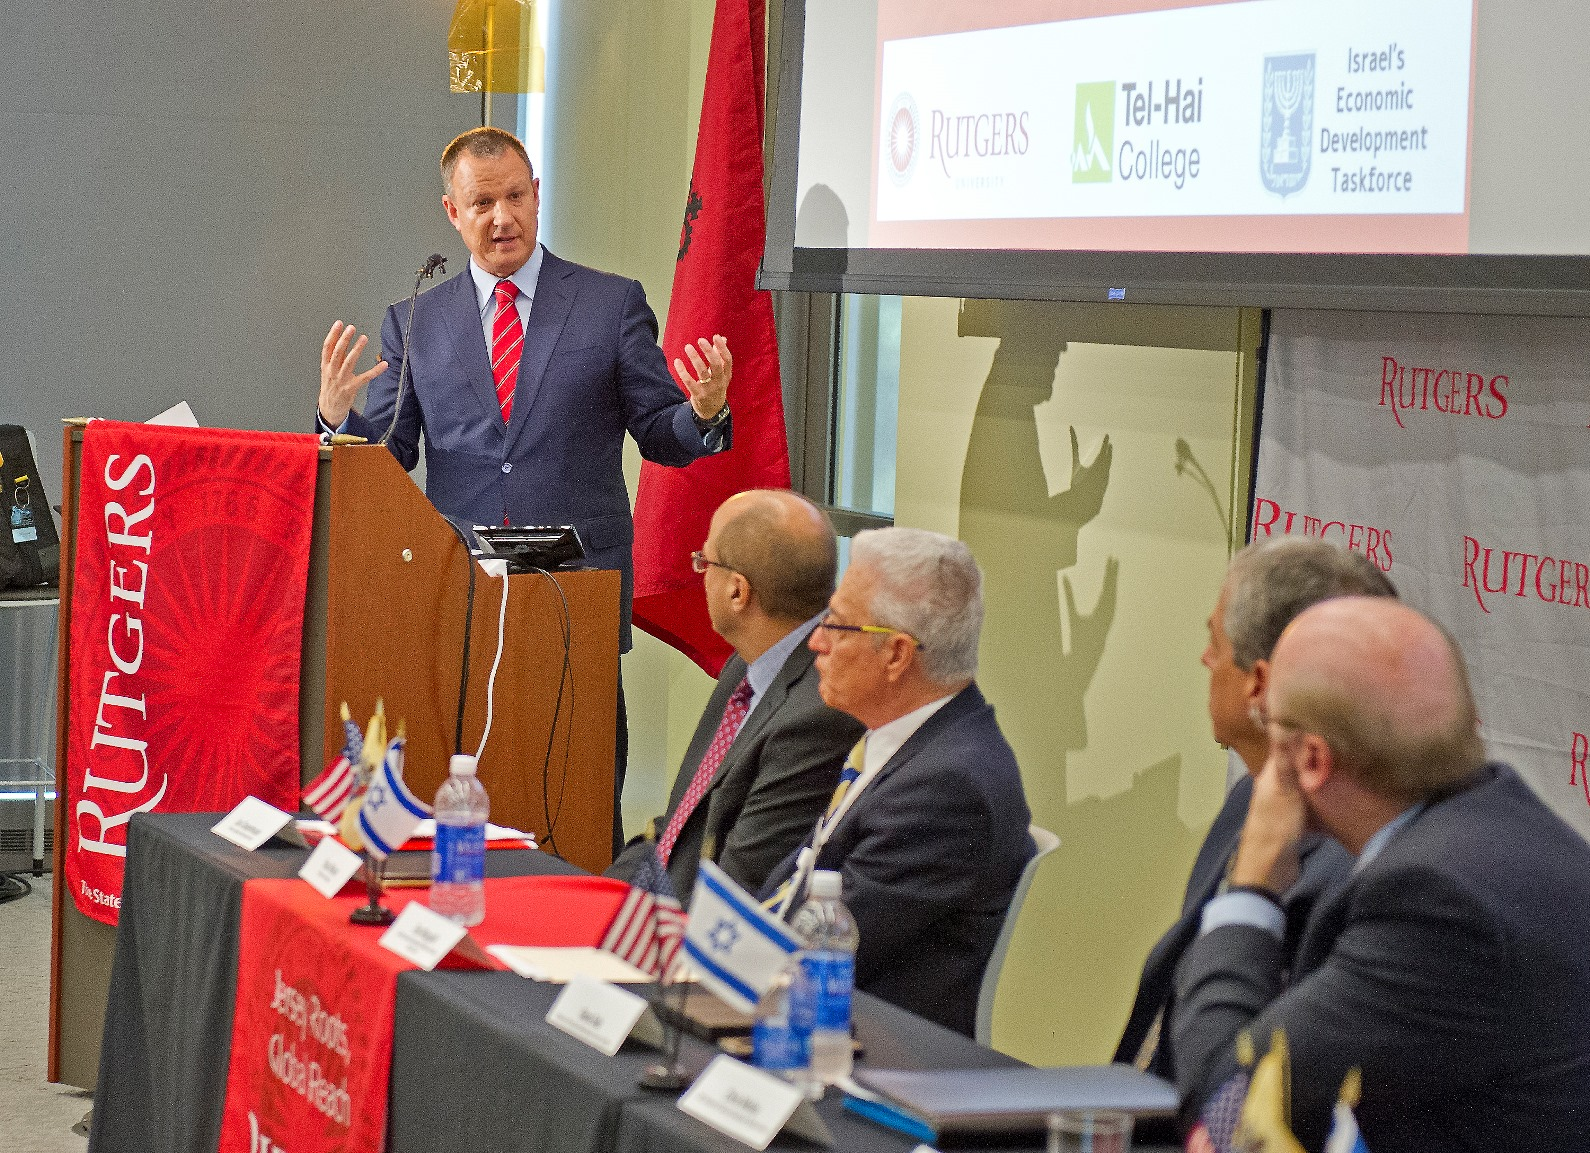 Erel Margalit announcing the New Jersey-Israel Healthy, Functional and Medical Foods Alliance at a signing ceremony at Rutgers University in New Jersey, September 18, 2015. Credit: Ron Sachs